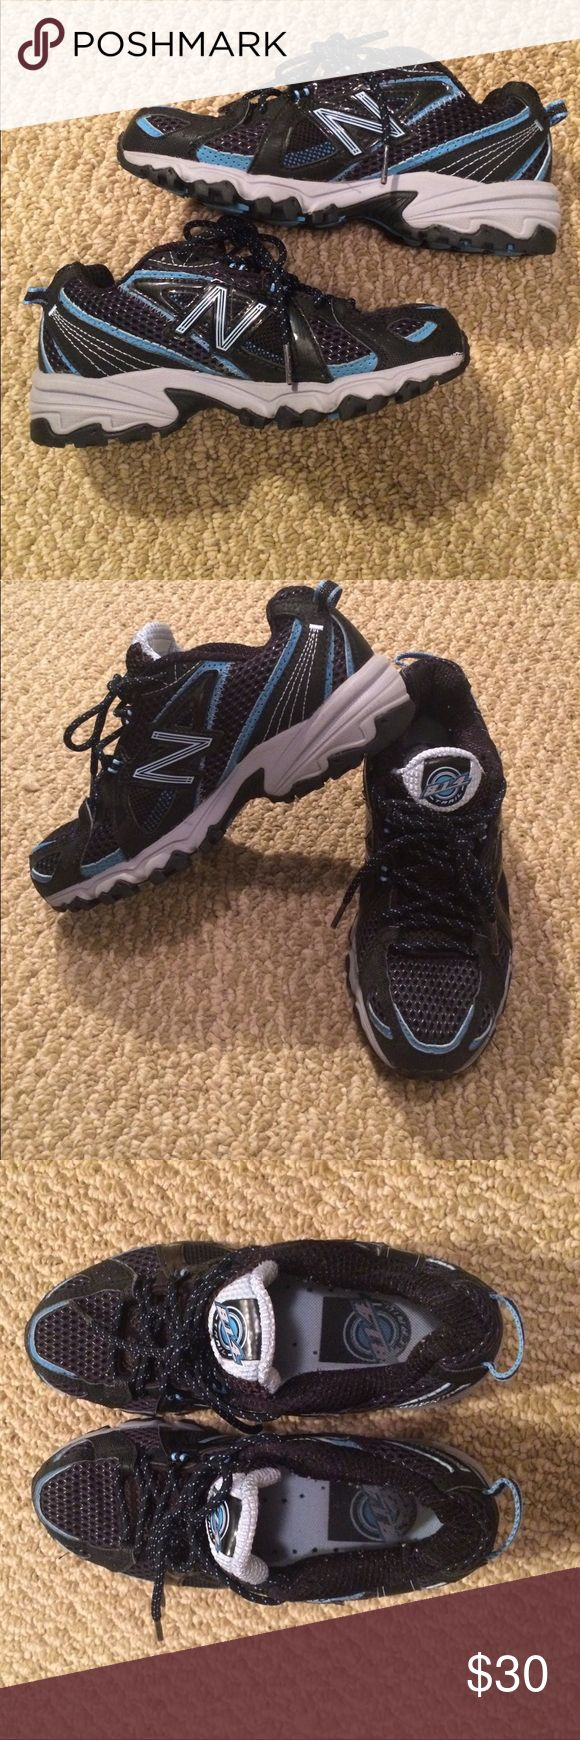 EUC New Balance All Terrain Running Shoes Blue, black and silver New Balance Athletic shoes. Please message with questions ! New Balance Shoes Sneakers